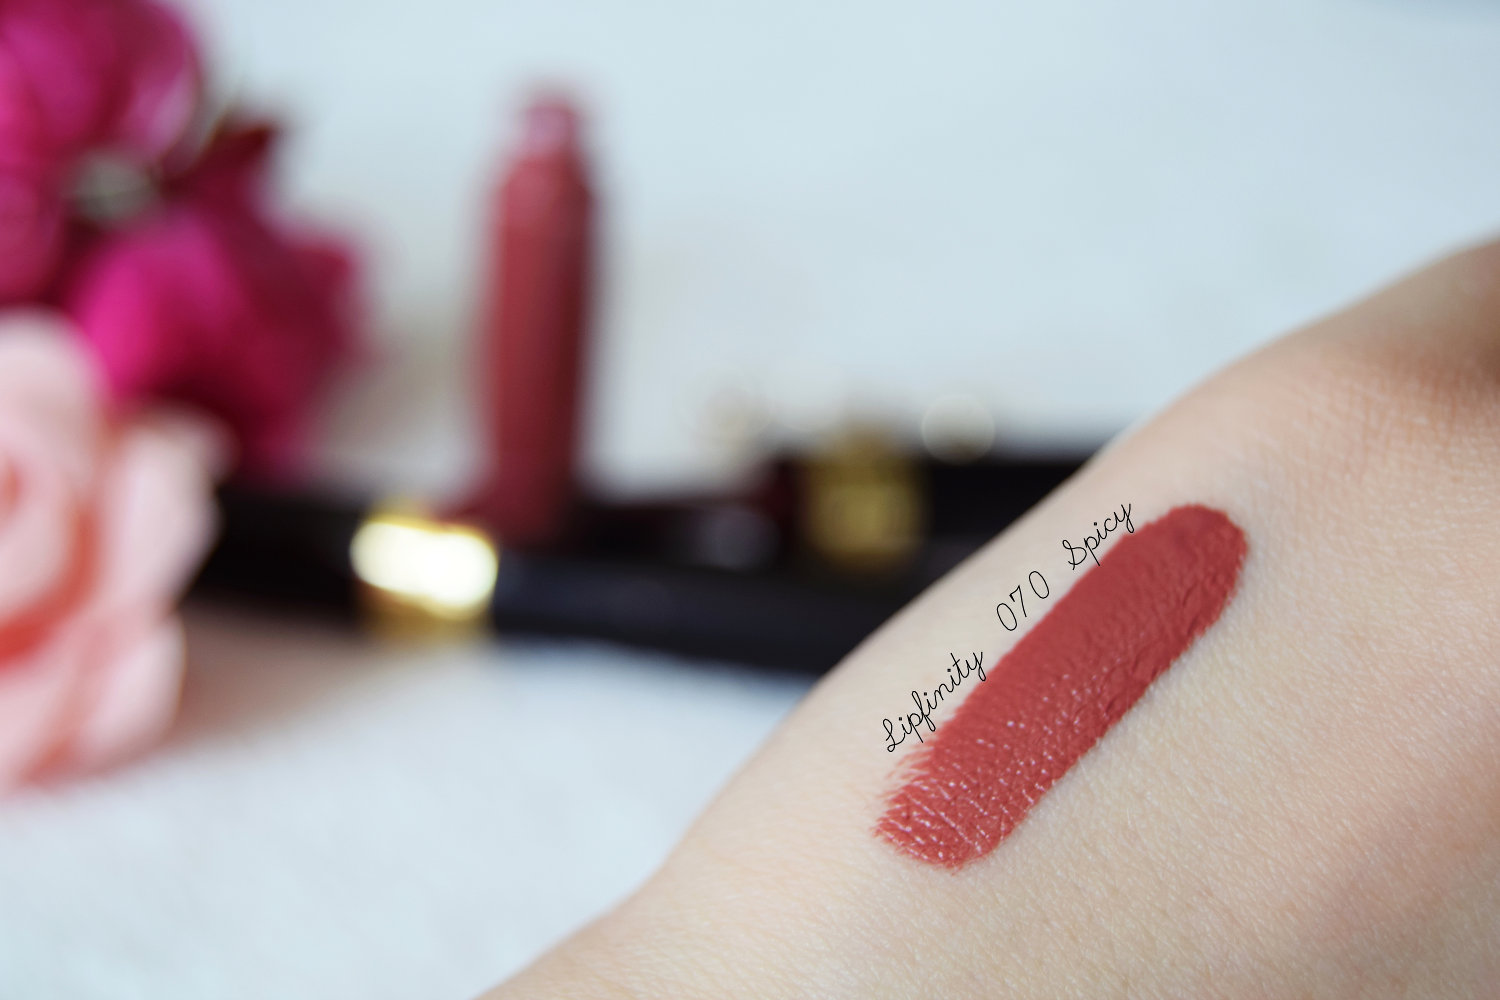 Organic Beauty Products >> Lipfinity Max Factor review – Zalabell